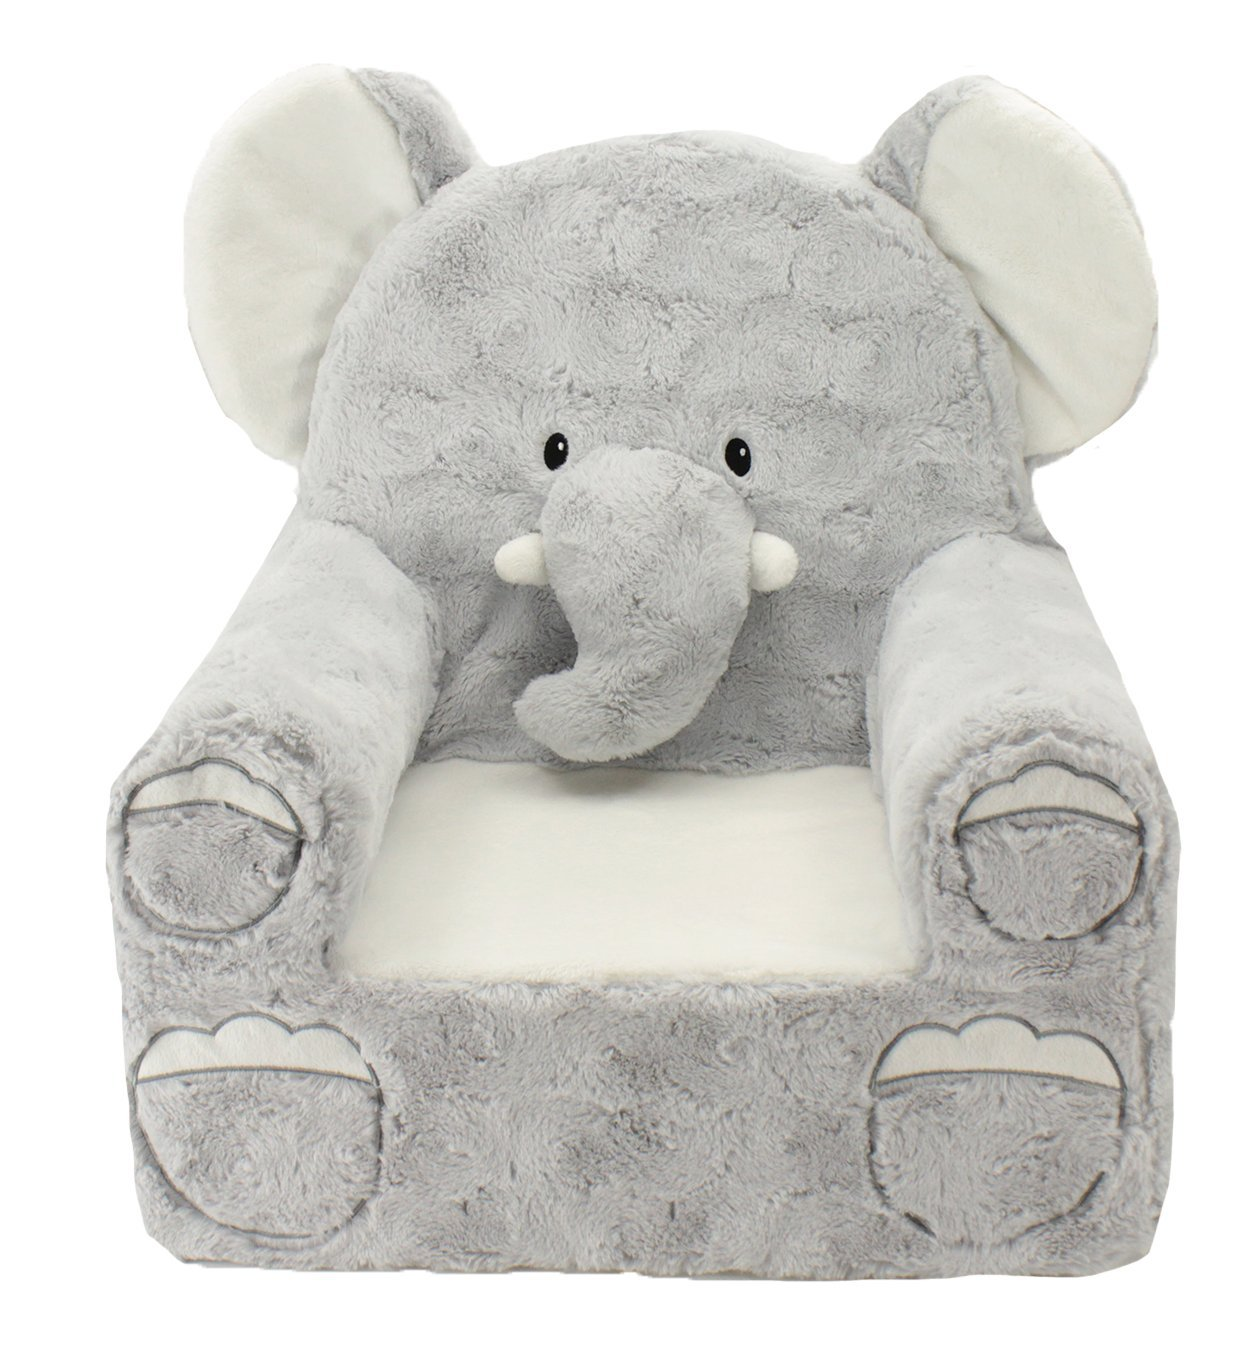 Sweet Seats | Gray Elephant Children's Chair | Large Size | Machine Washable Cover